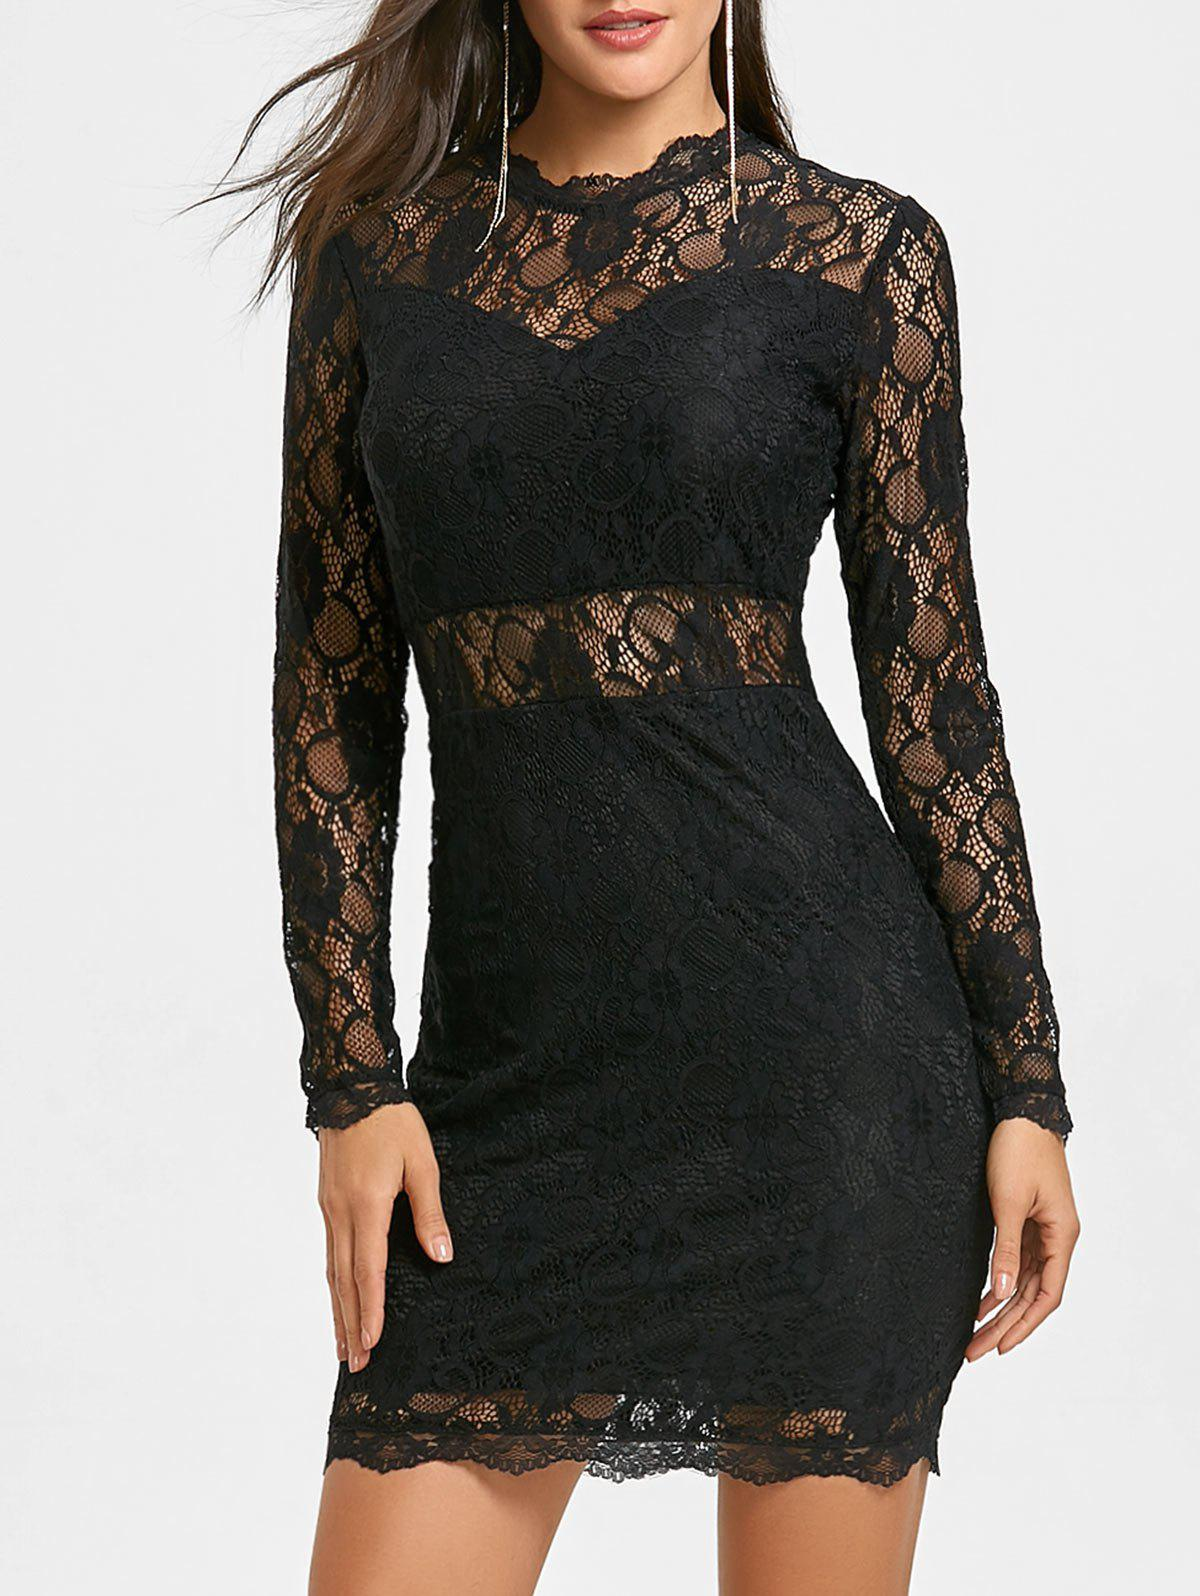 Lace Mock Neck Bodycon Dress - BLACK M